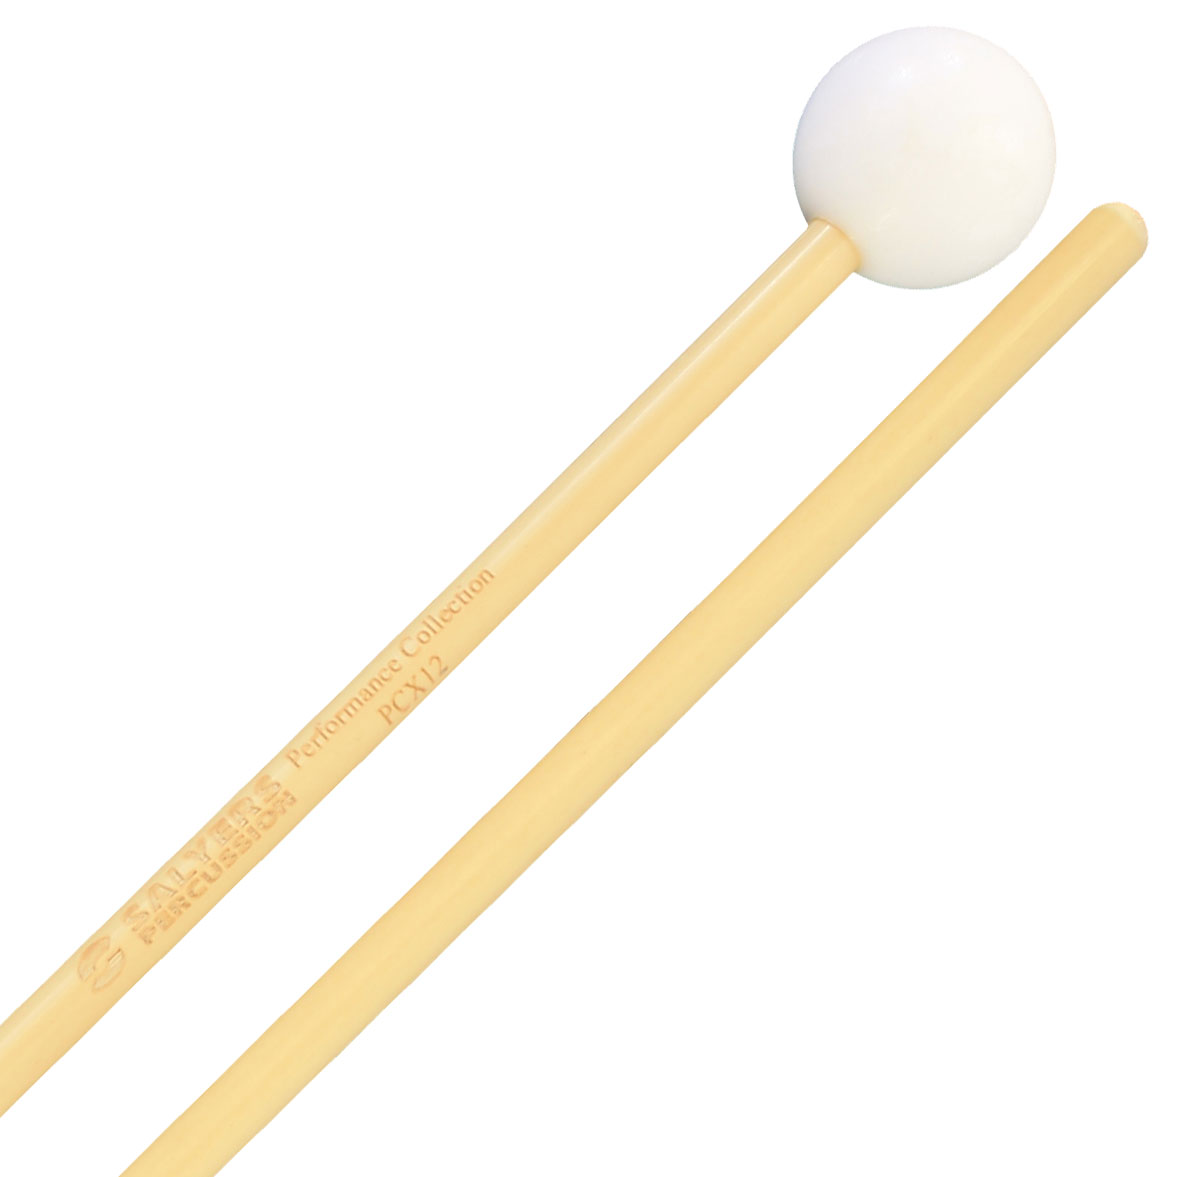 "Salyers Percussion Performance Collection 1 1/8"" Nylon Xylophone/Bell Mallets"